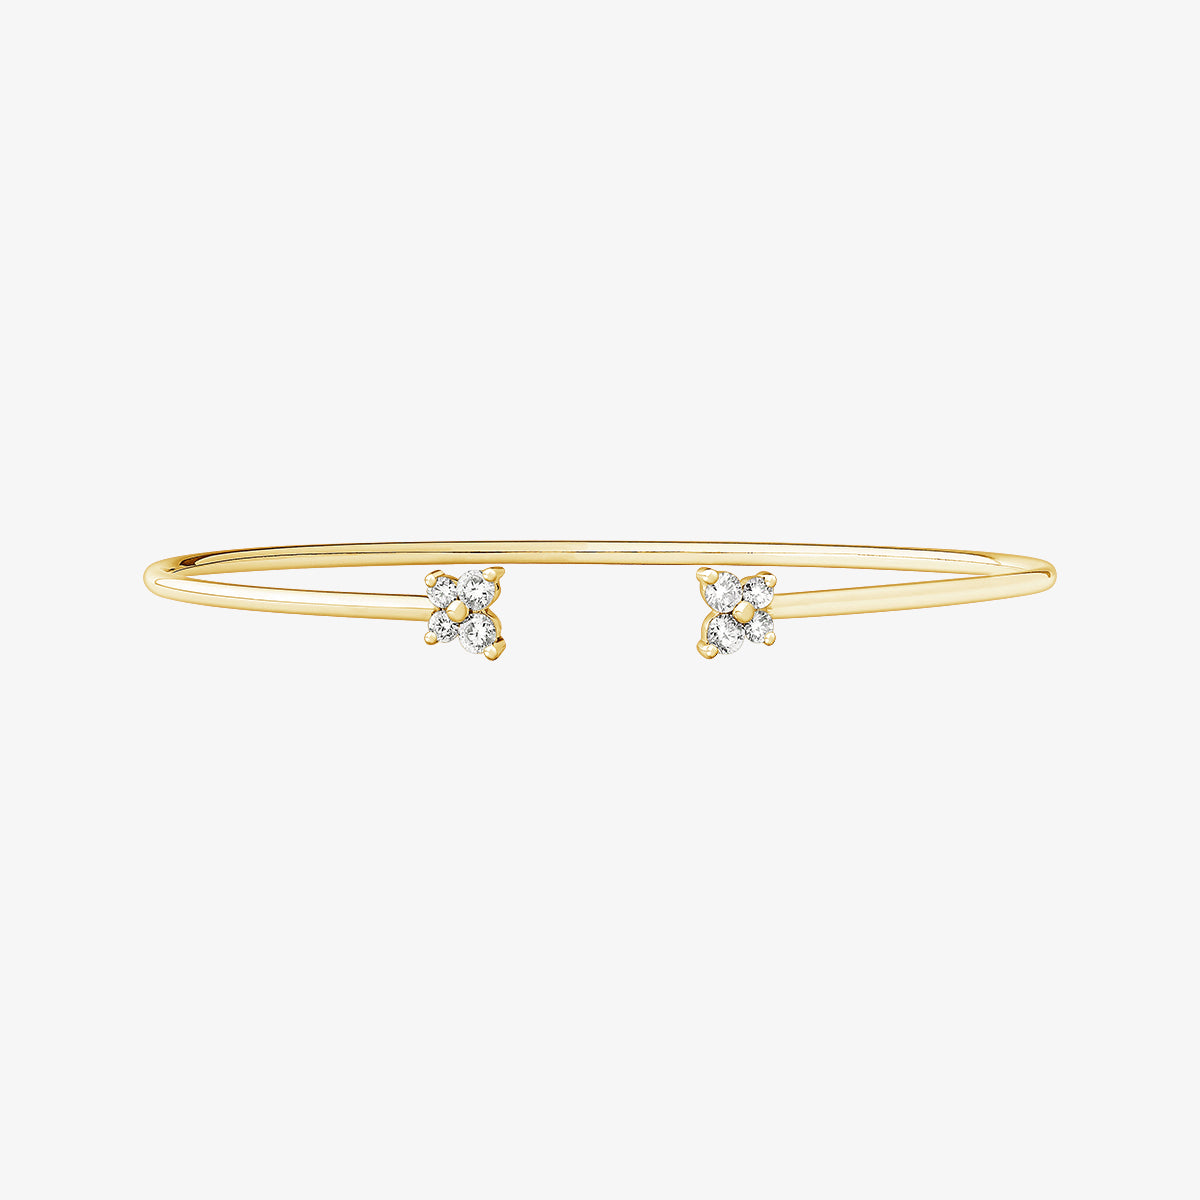 Linea - Diamond Cuff Bracelet - estellacollection